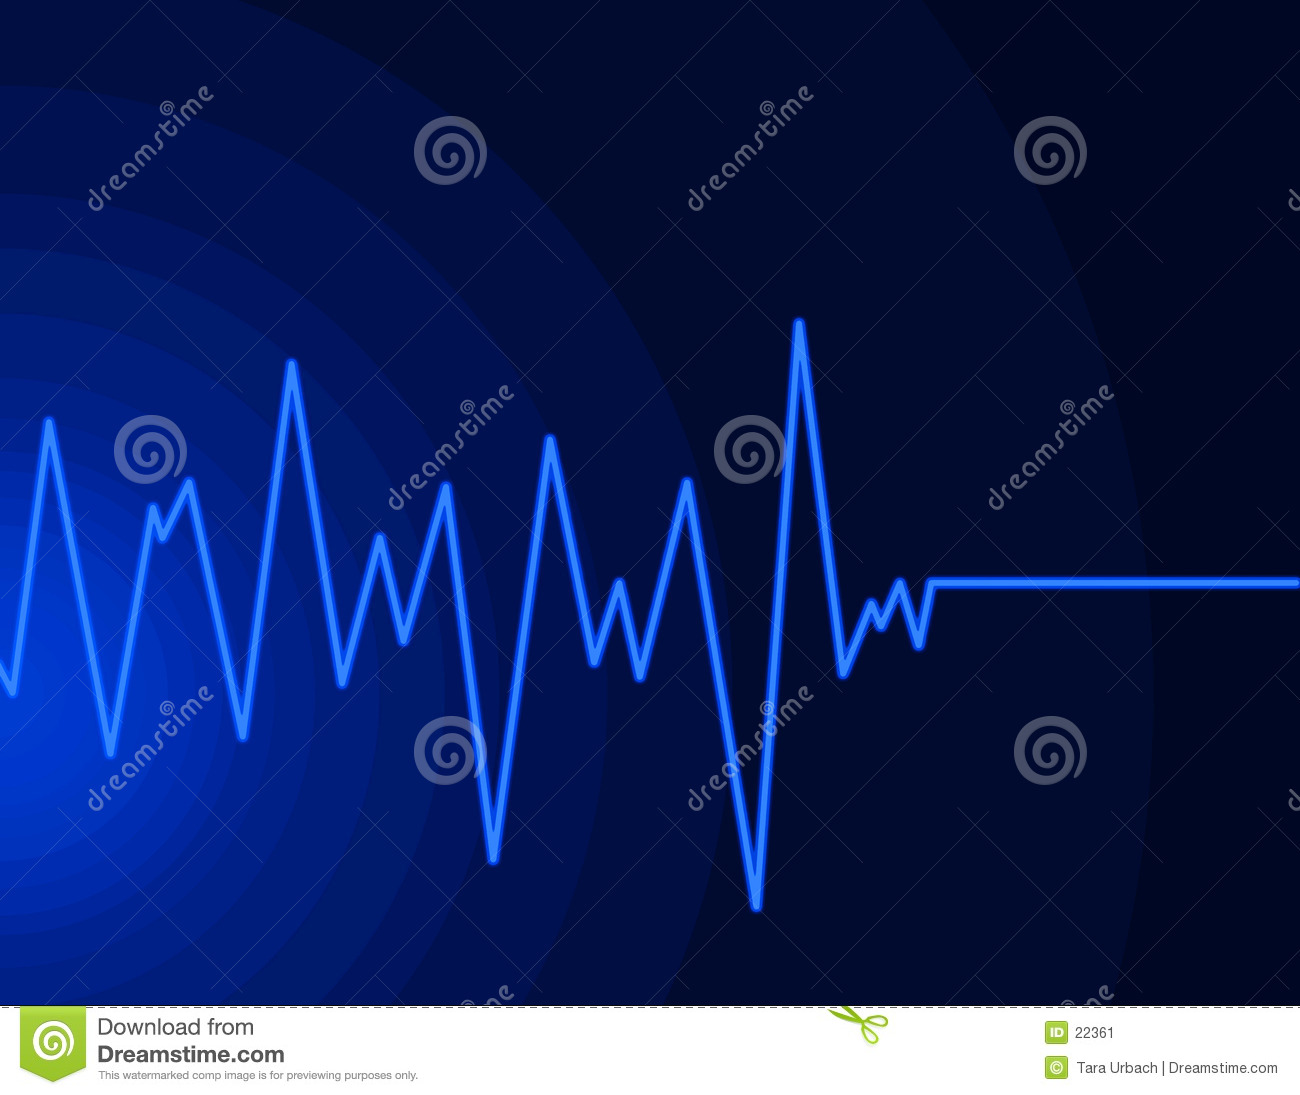 I Love You Animation Wallpaper Radio Wave Neon Blue Stock Image Image 22361